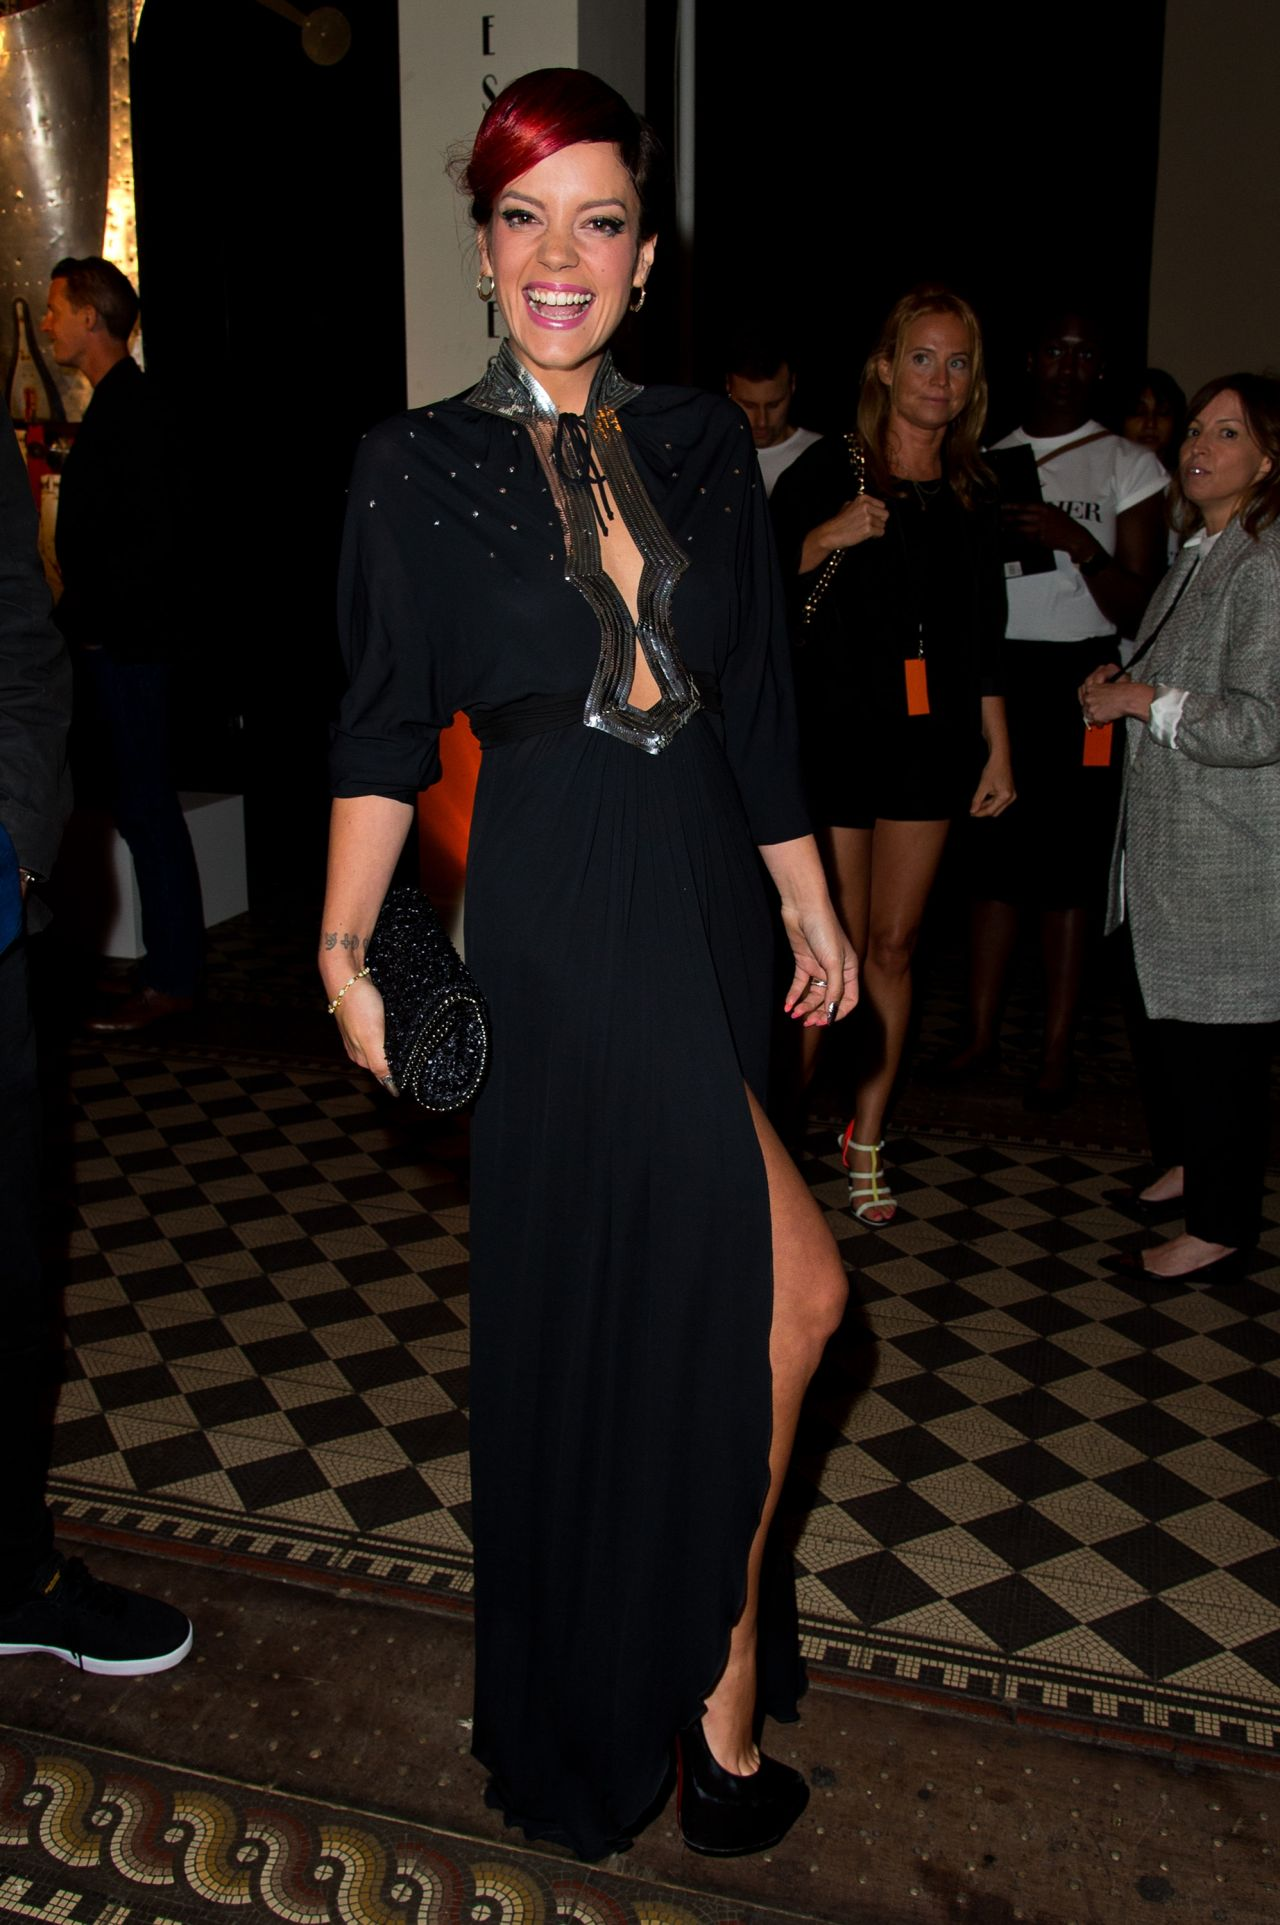 Lily Allen Attends The Other Ball - June 2014